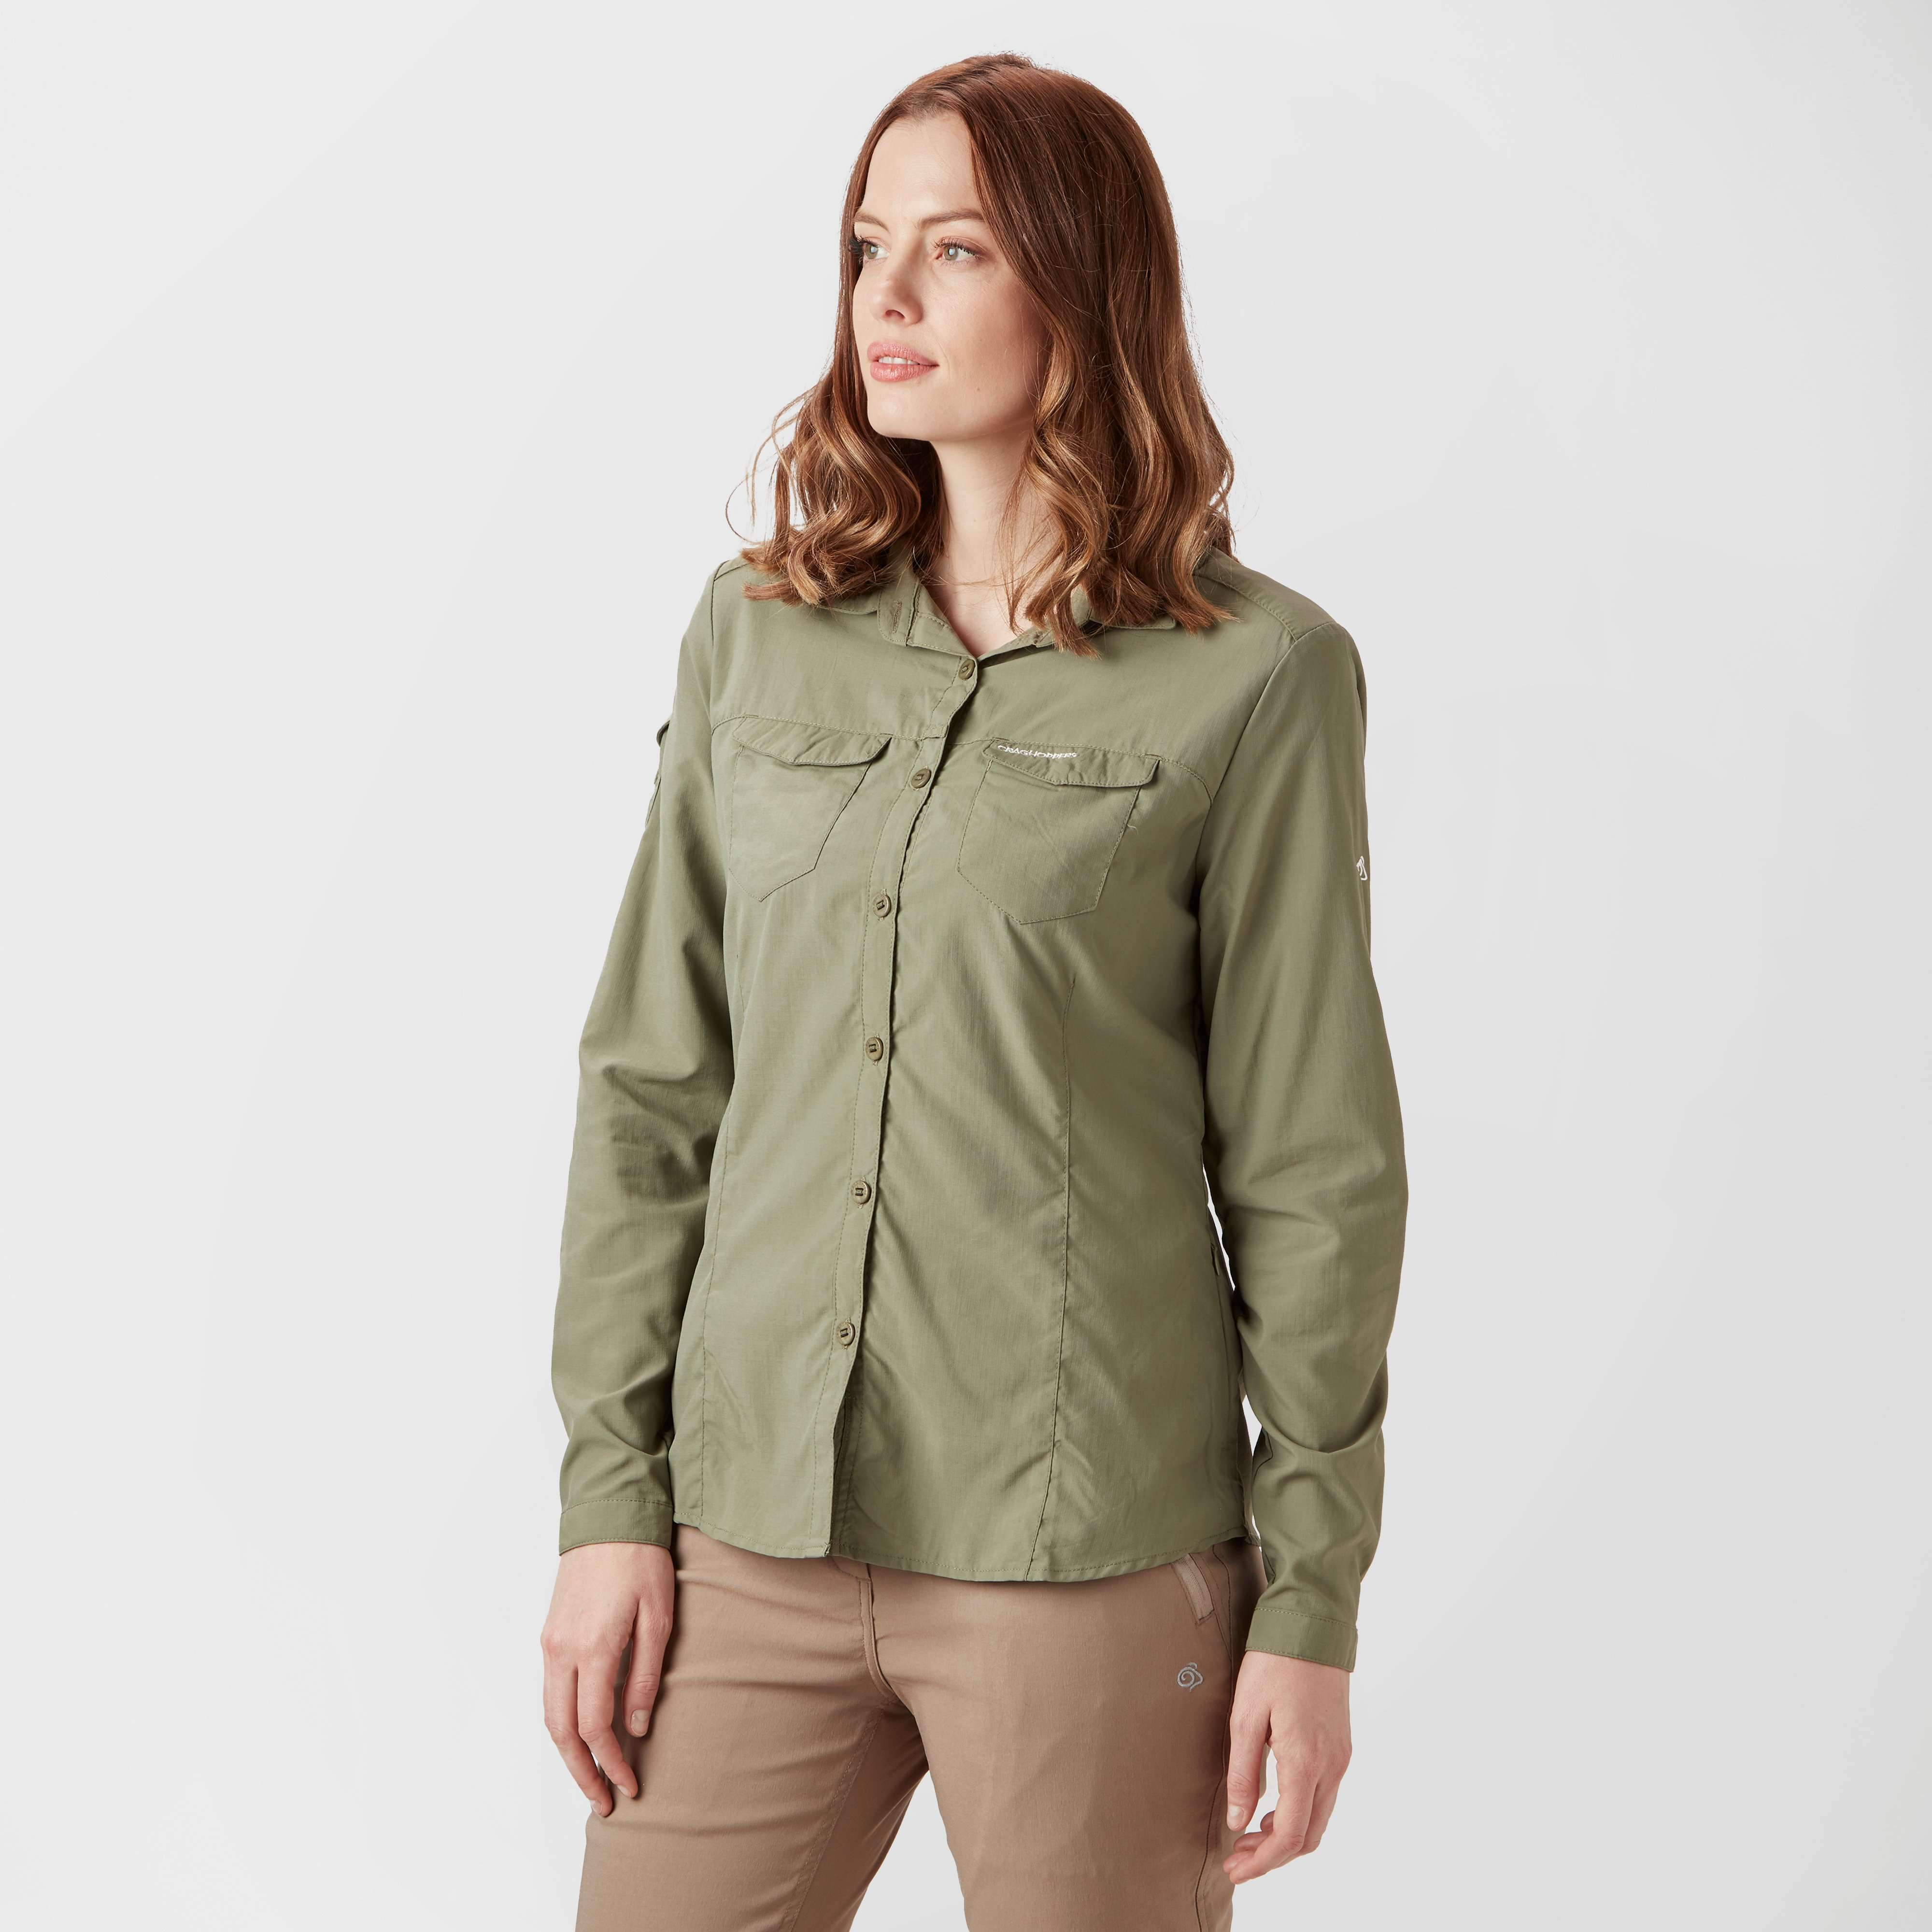 CRAGHOPPERS Women's Nosilife Adventure Shirt